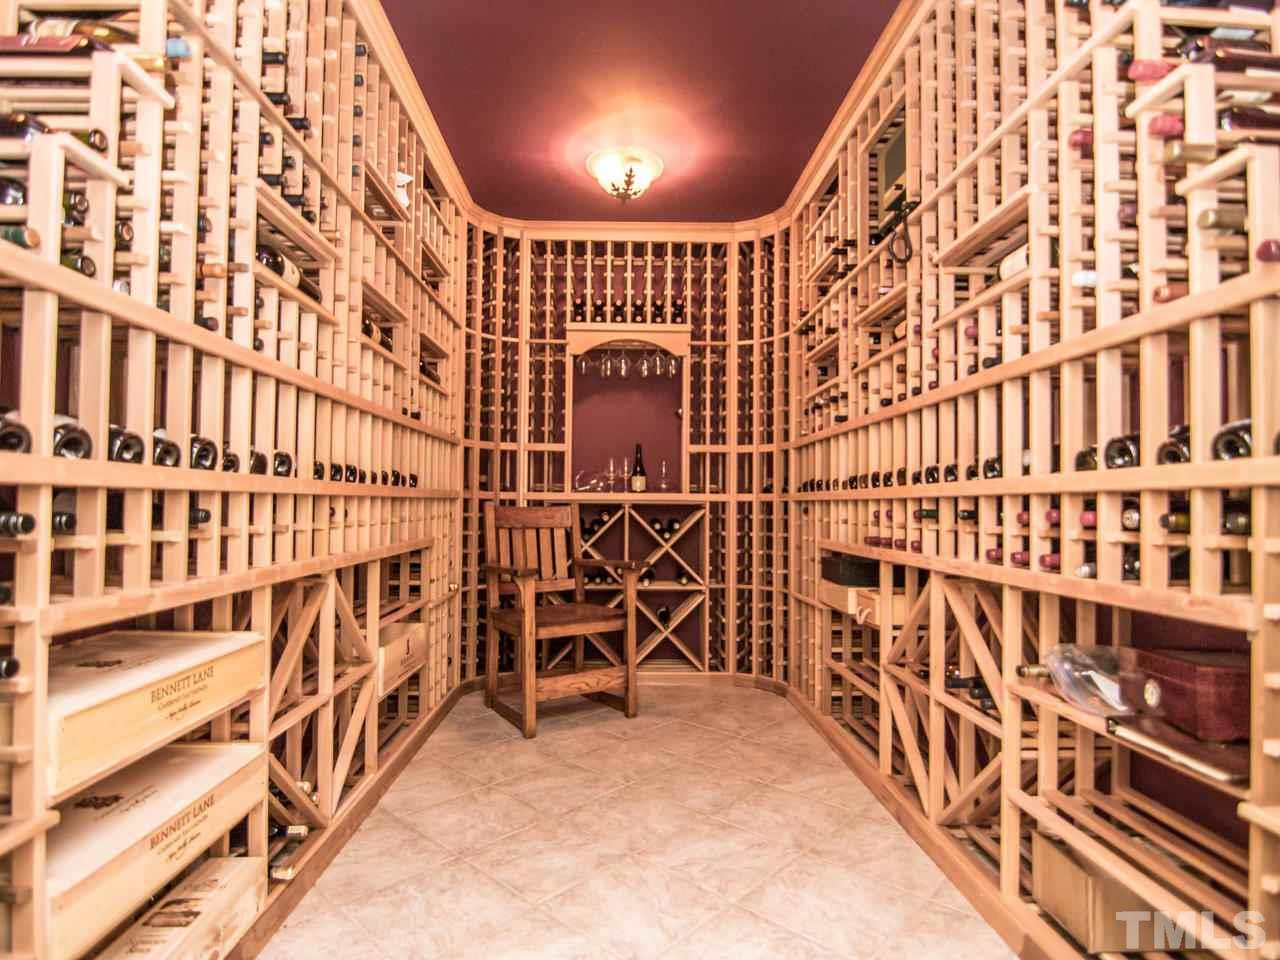 1200+ bottle cellar with rope lighting.